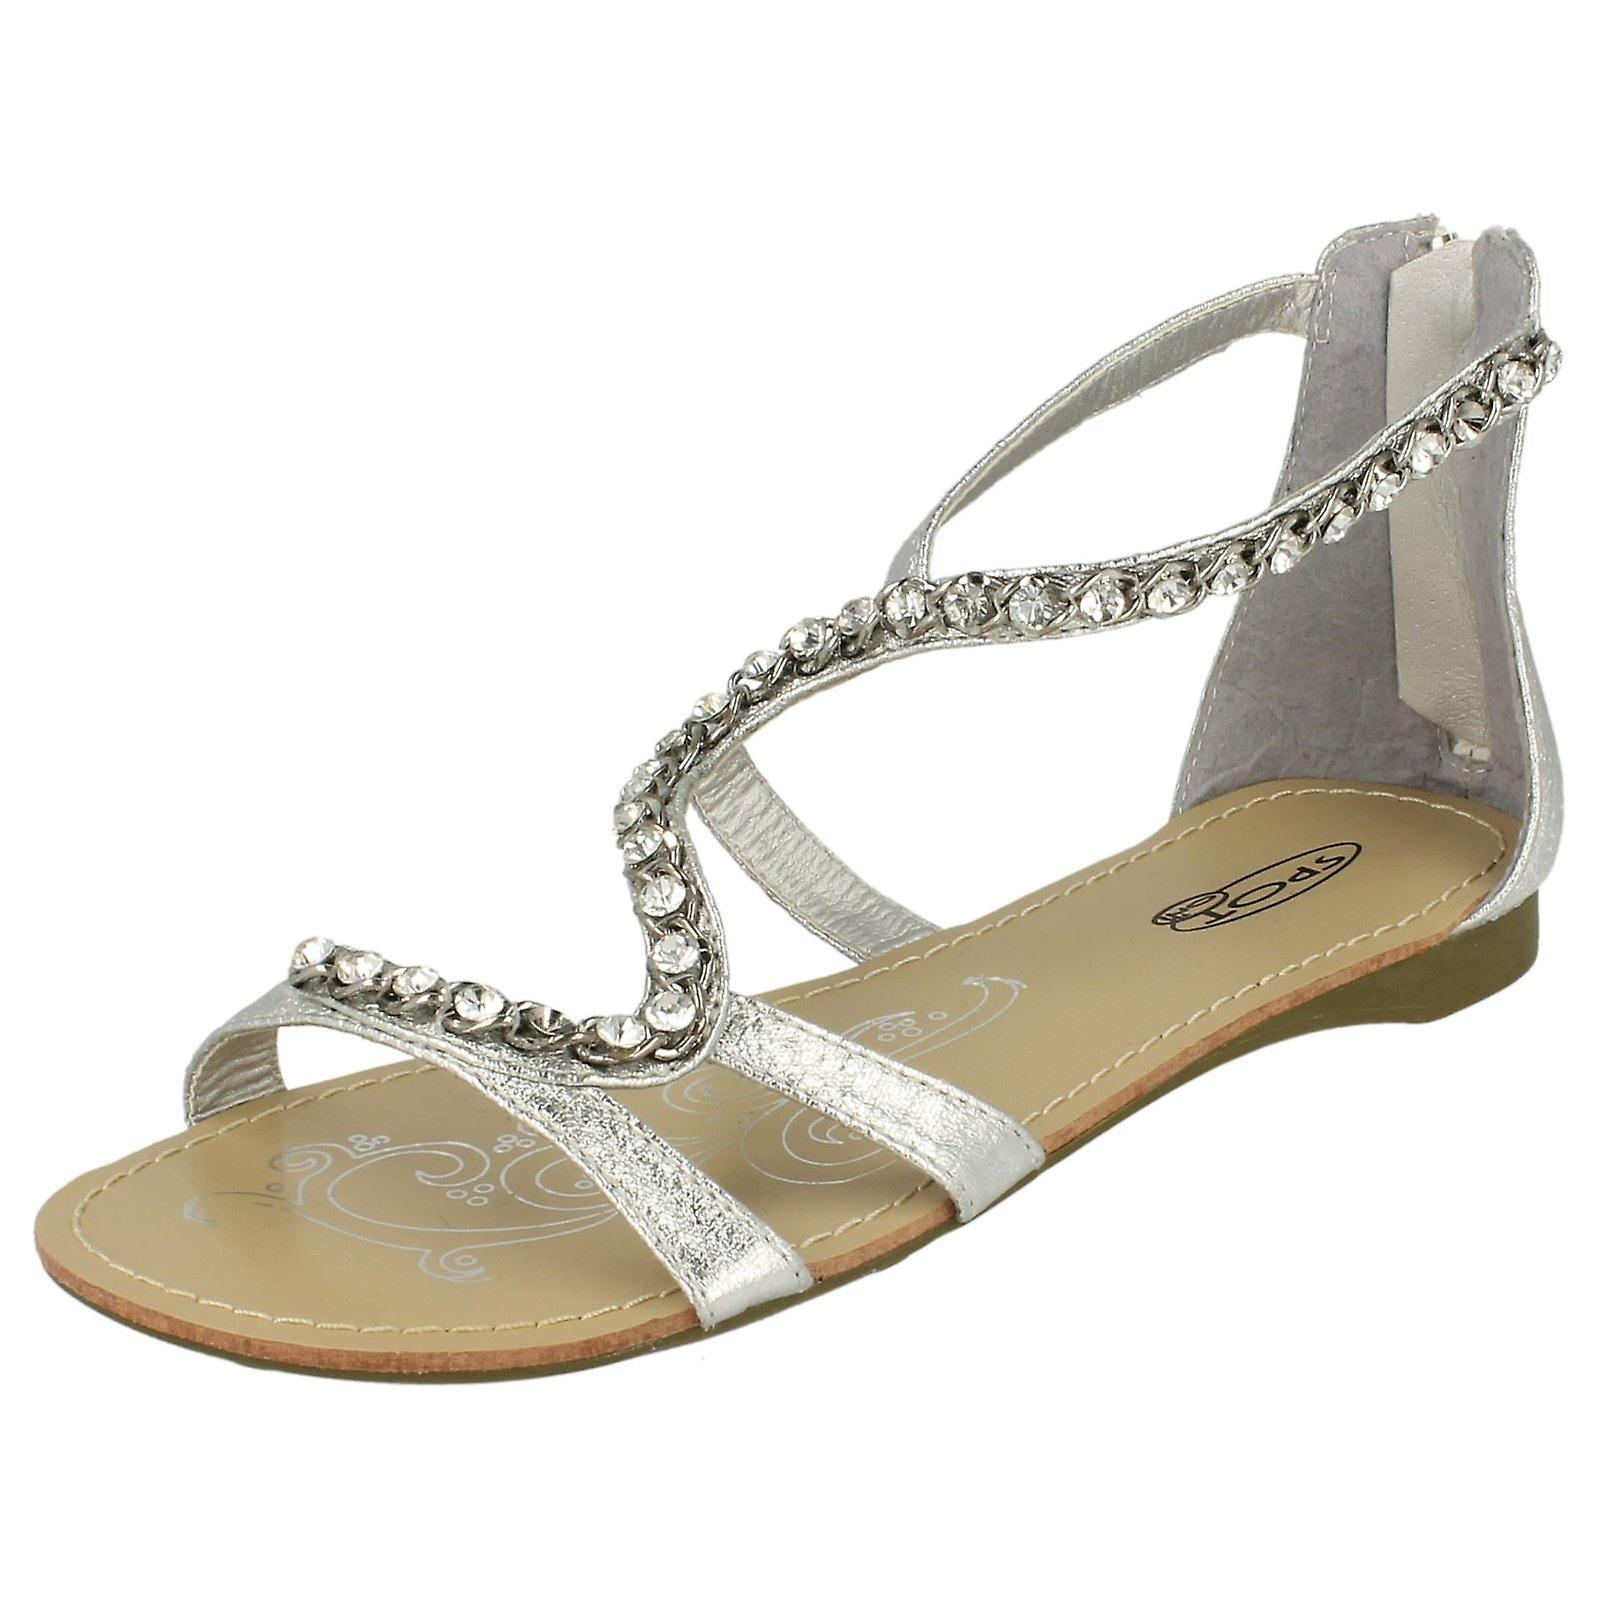 Ladies Spot On Flat Sandals with Back Zip and Jewelled Snake Strap 0rsfM